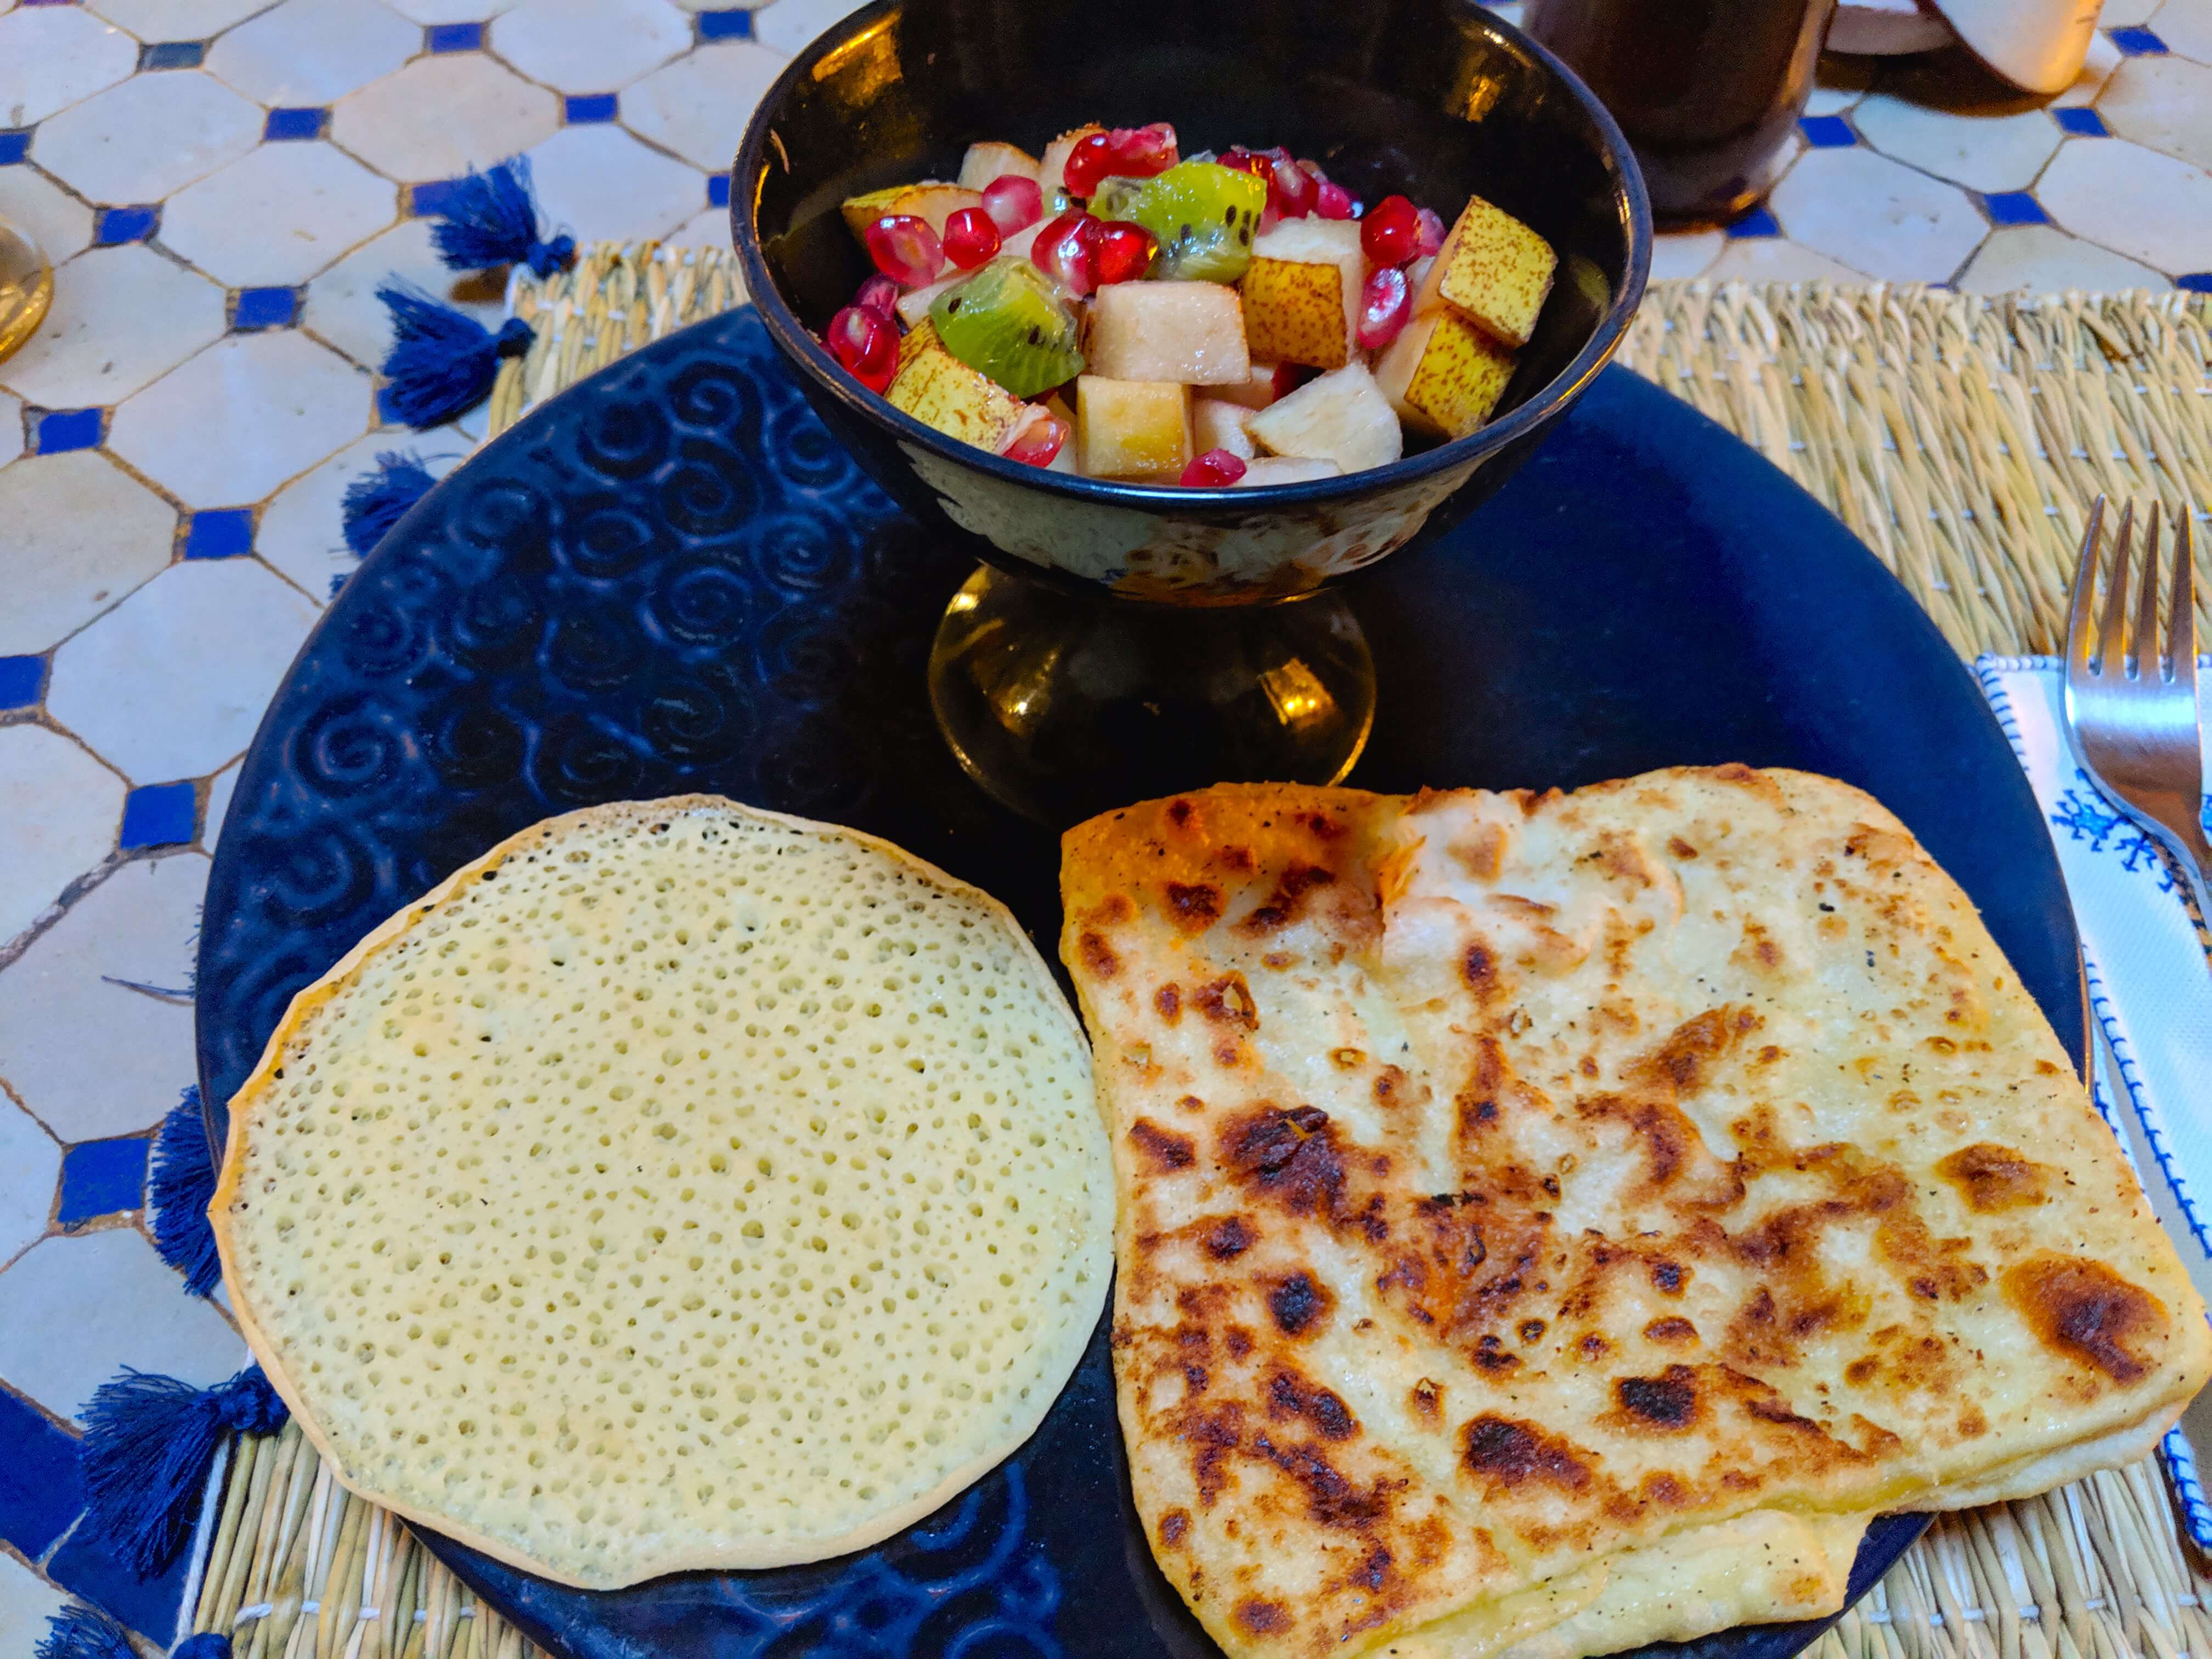 Beghrir - Morocco Food Guide: Delicious foods you need to try while visiting Morocco